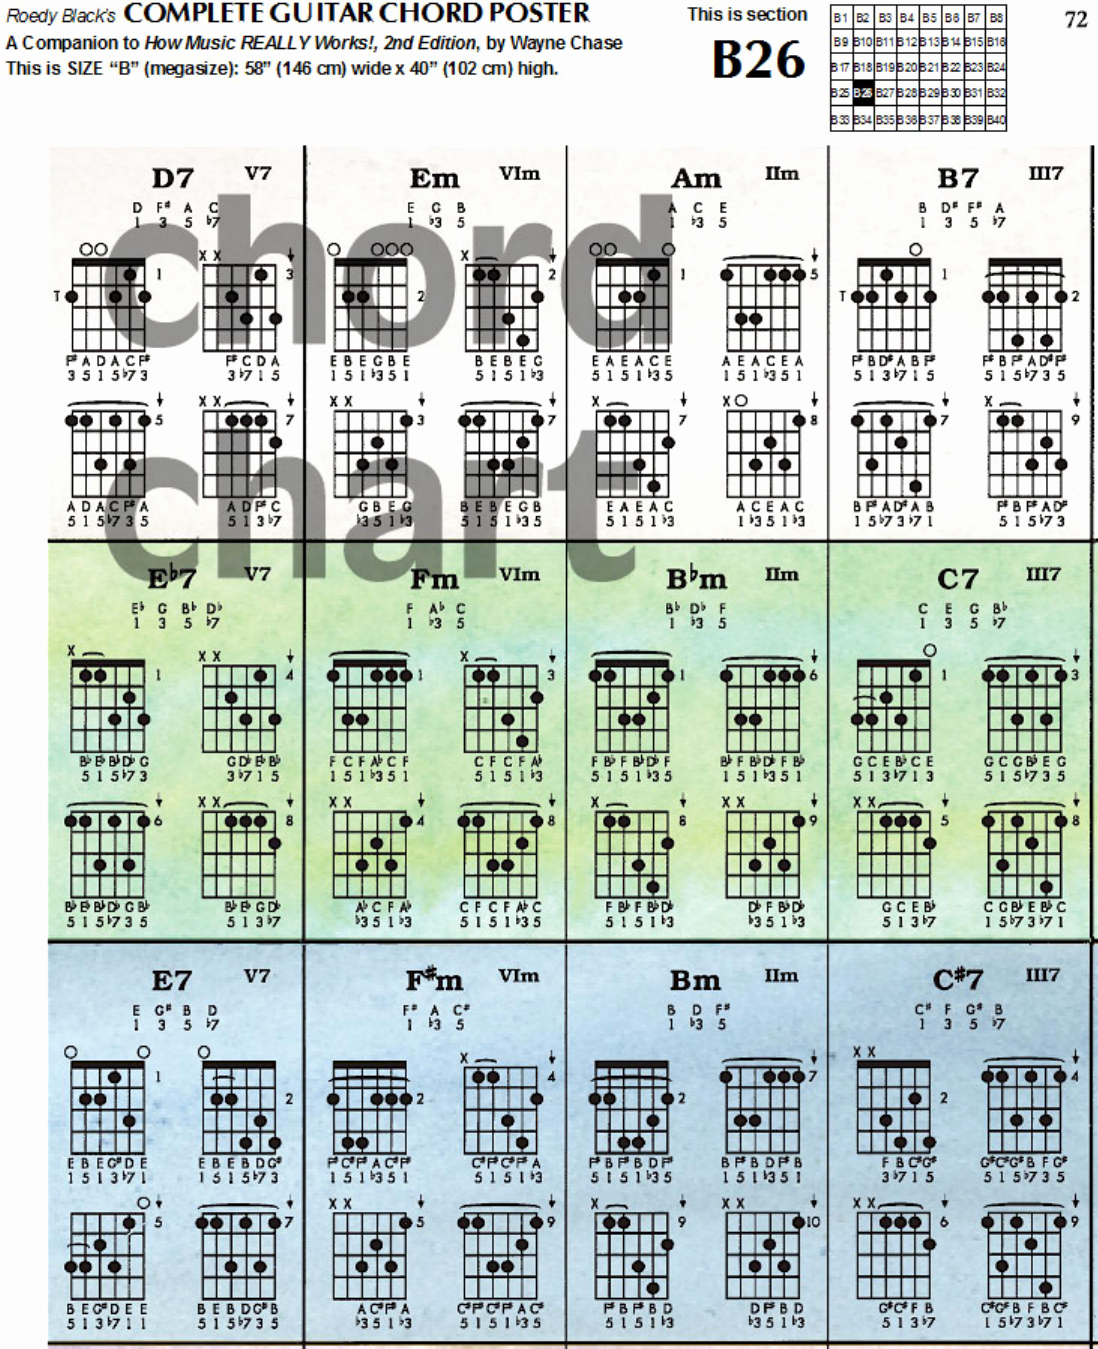 Chord Chart Guitar Complete Beautiful Download Plete Guitar Chord Chart Template for Free